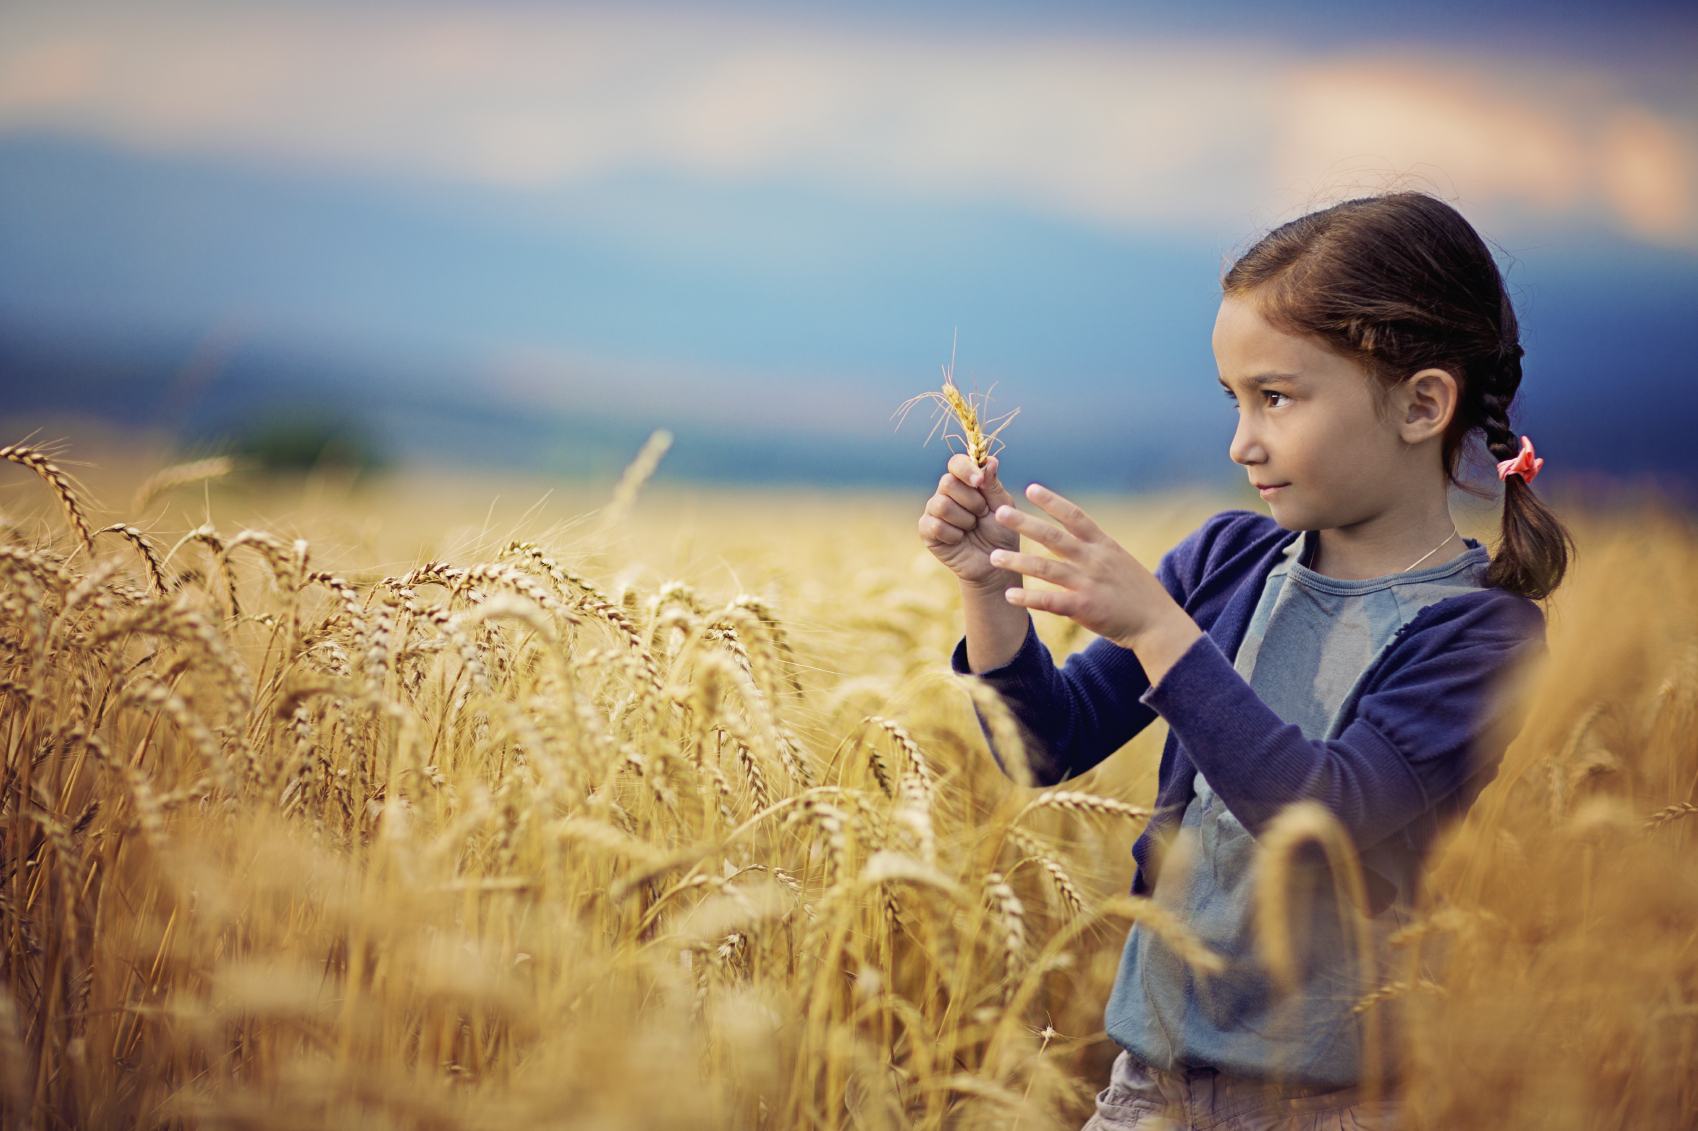 Girl with Pink Ribbon in field of wheat